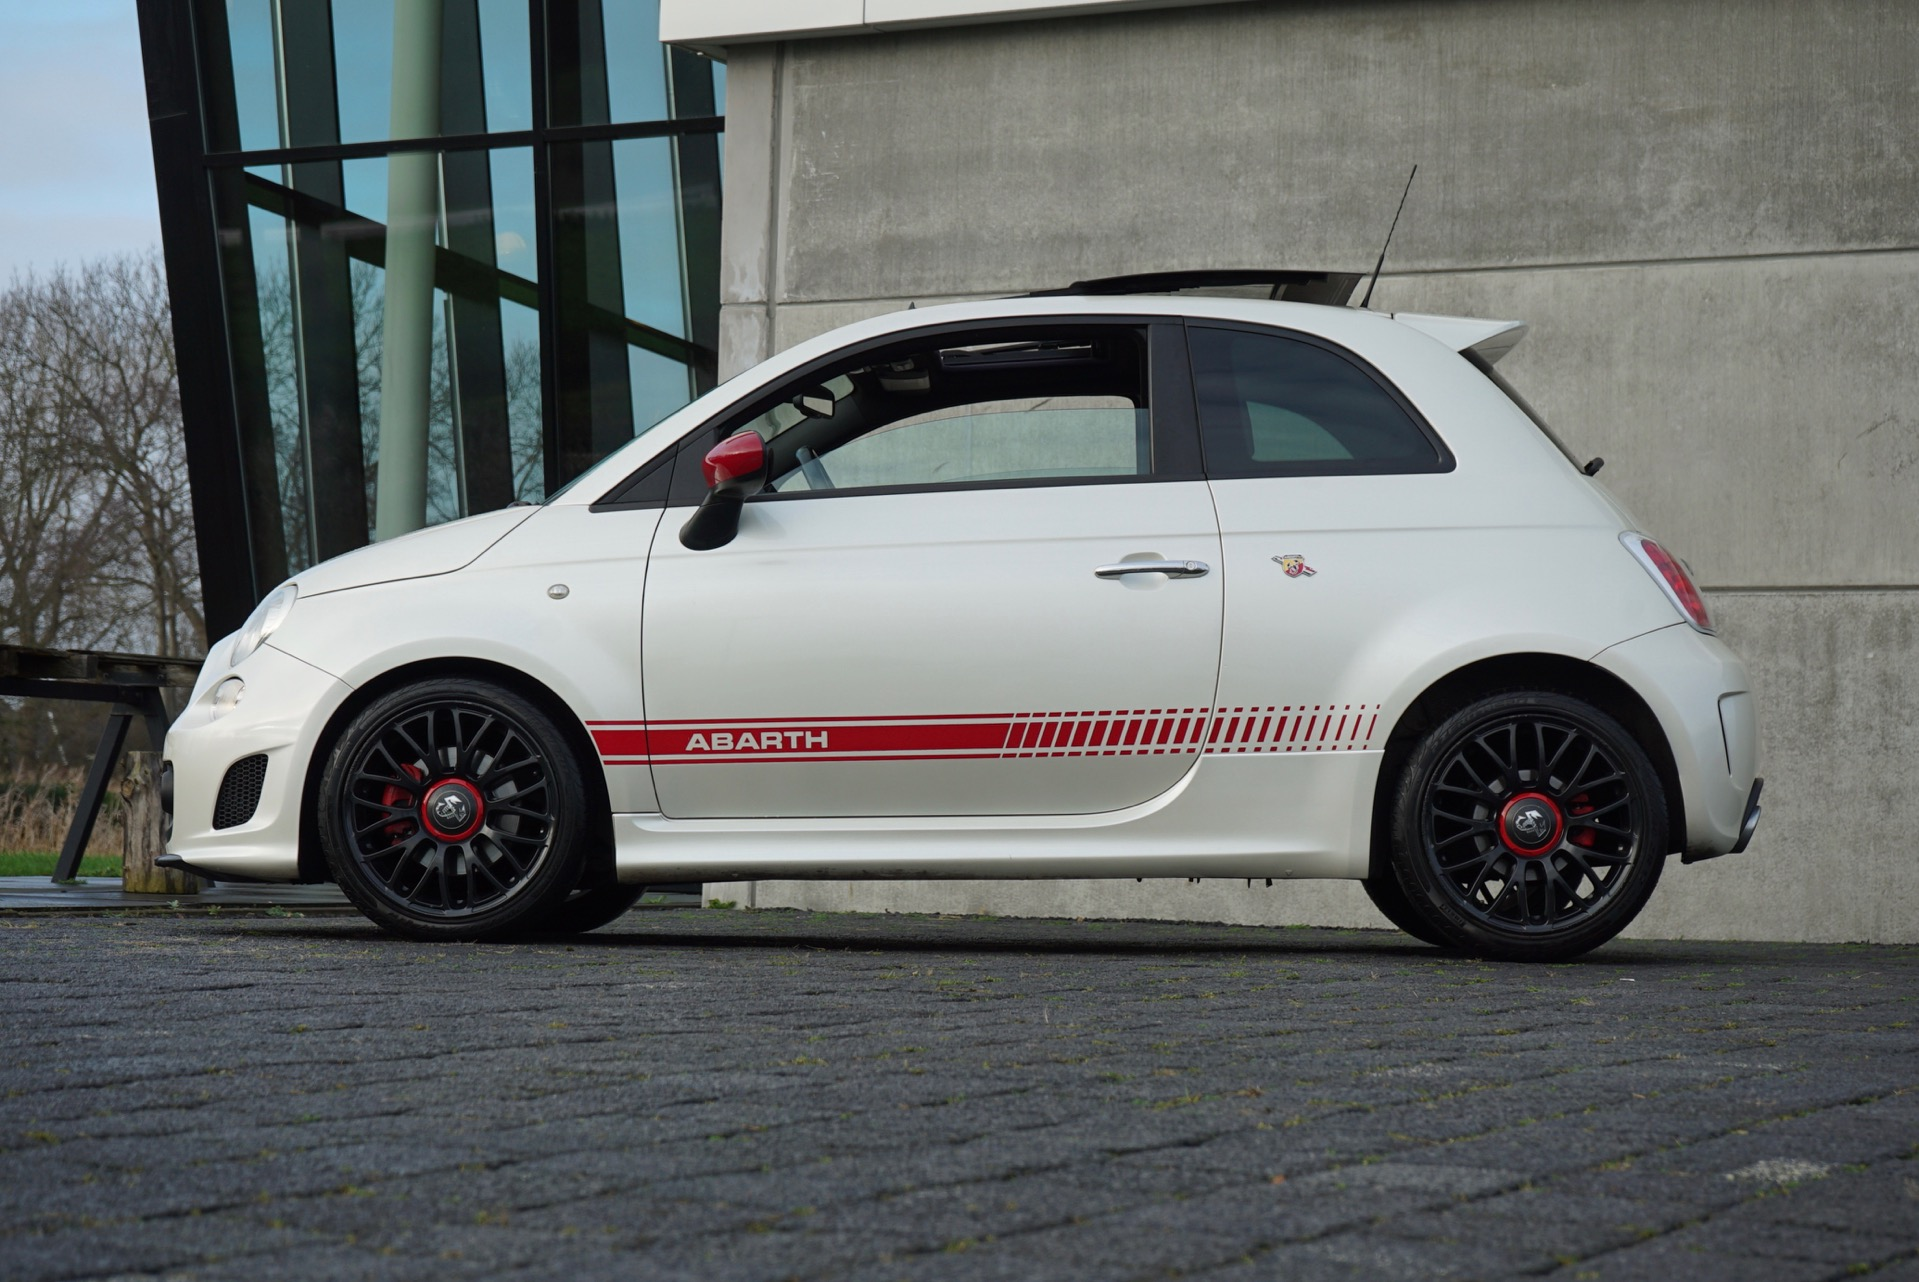 FIAT 500 ABARTH 1.4 16V TURBO